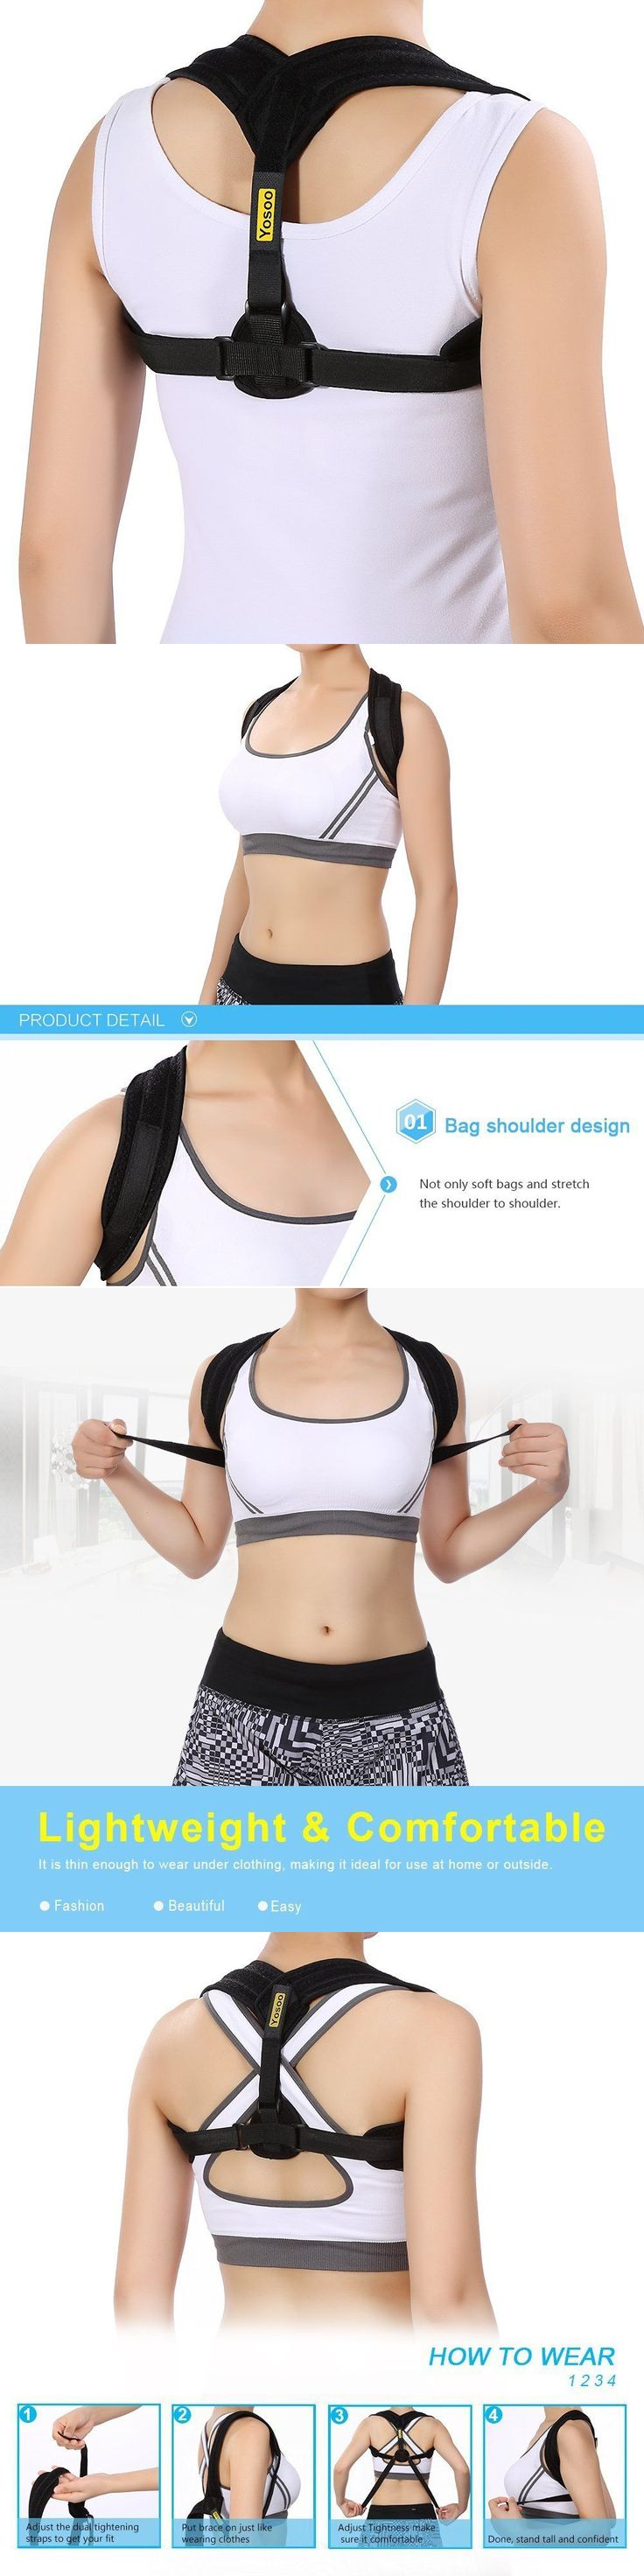 Orthotics Braces and Sleeves: Posture Back Shoulder Corrector Therapy Adjustable Support Brace For Women Men -> BUY IT NOW ONLY: $32.95 on eBay!